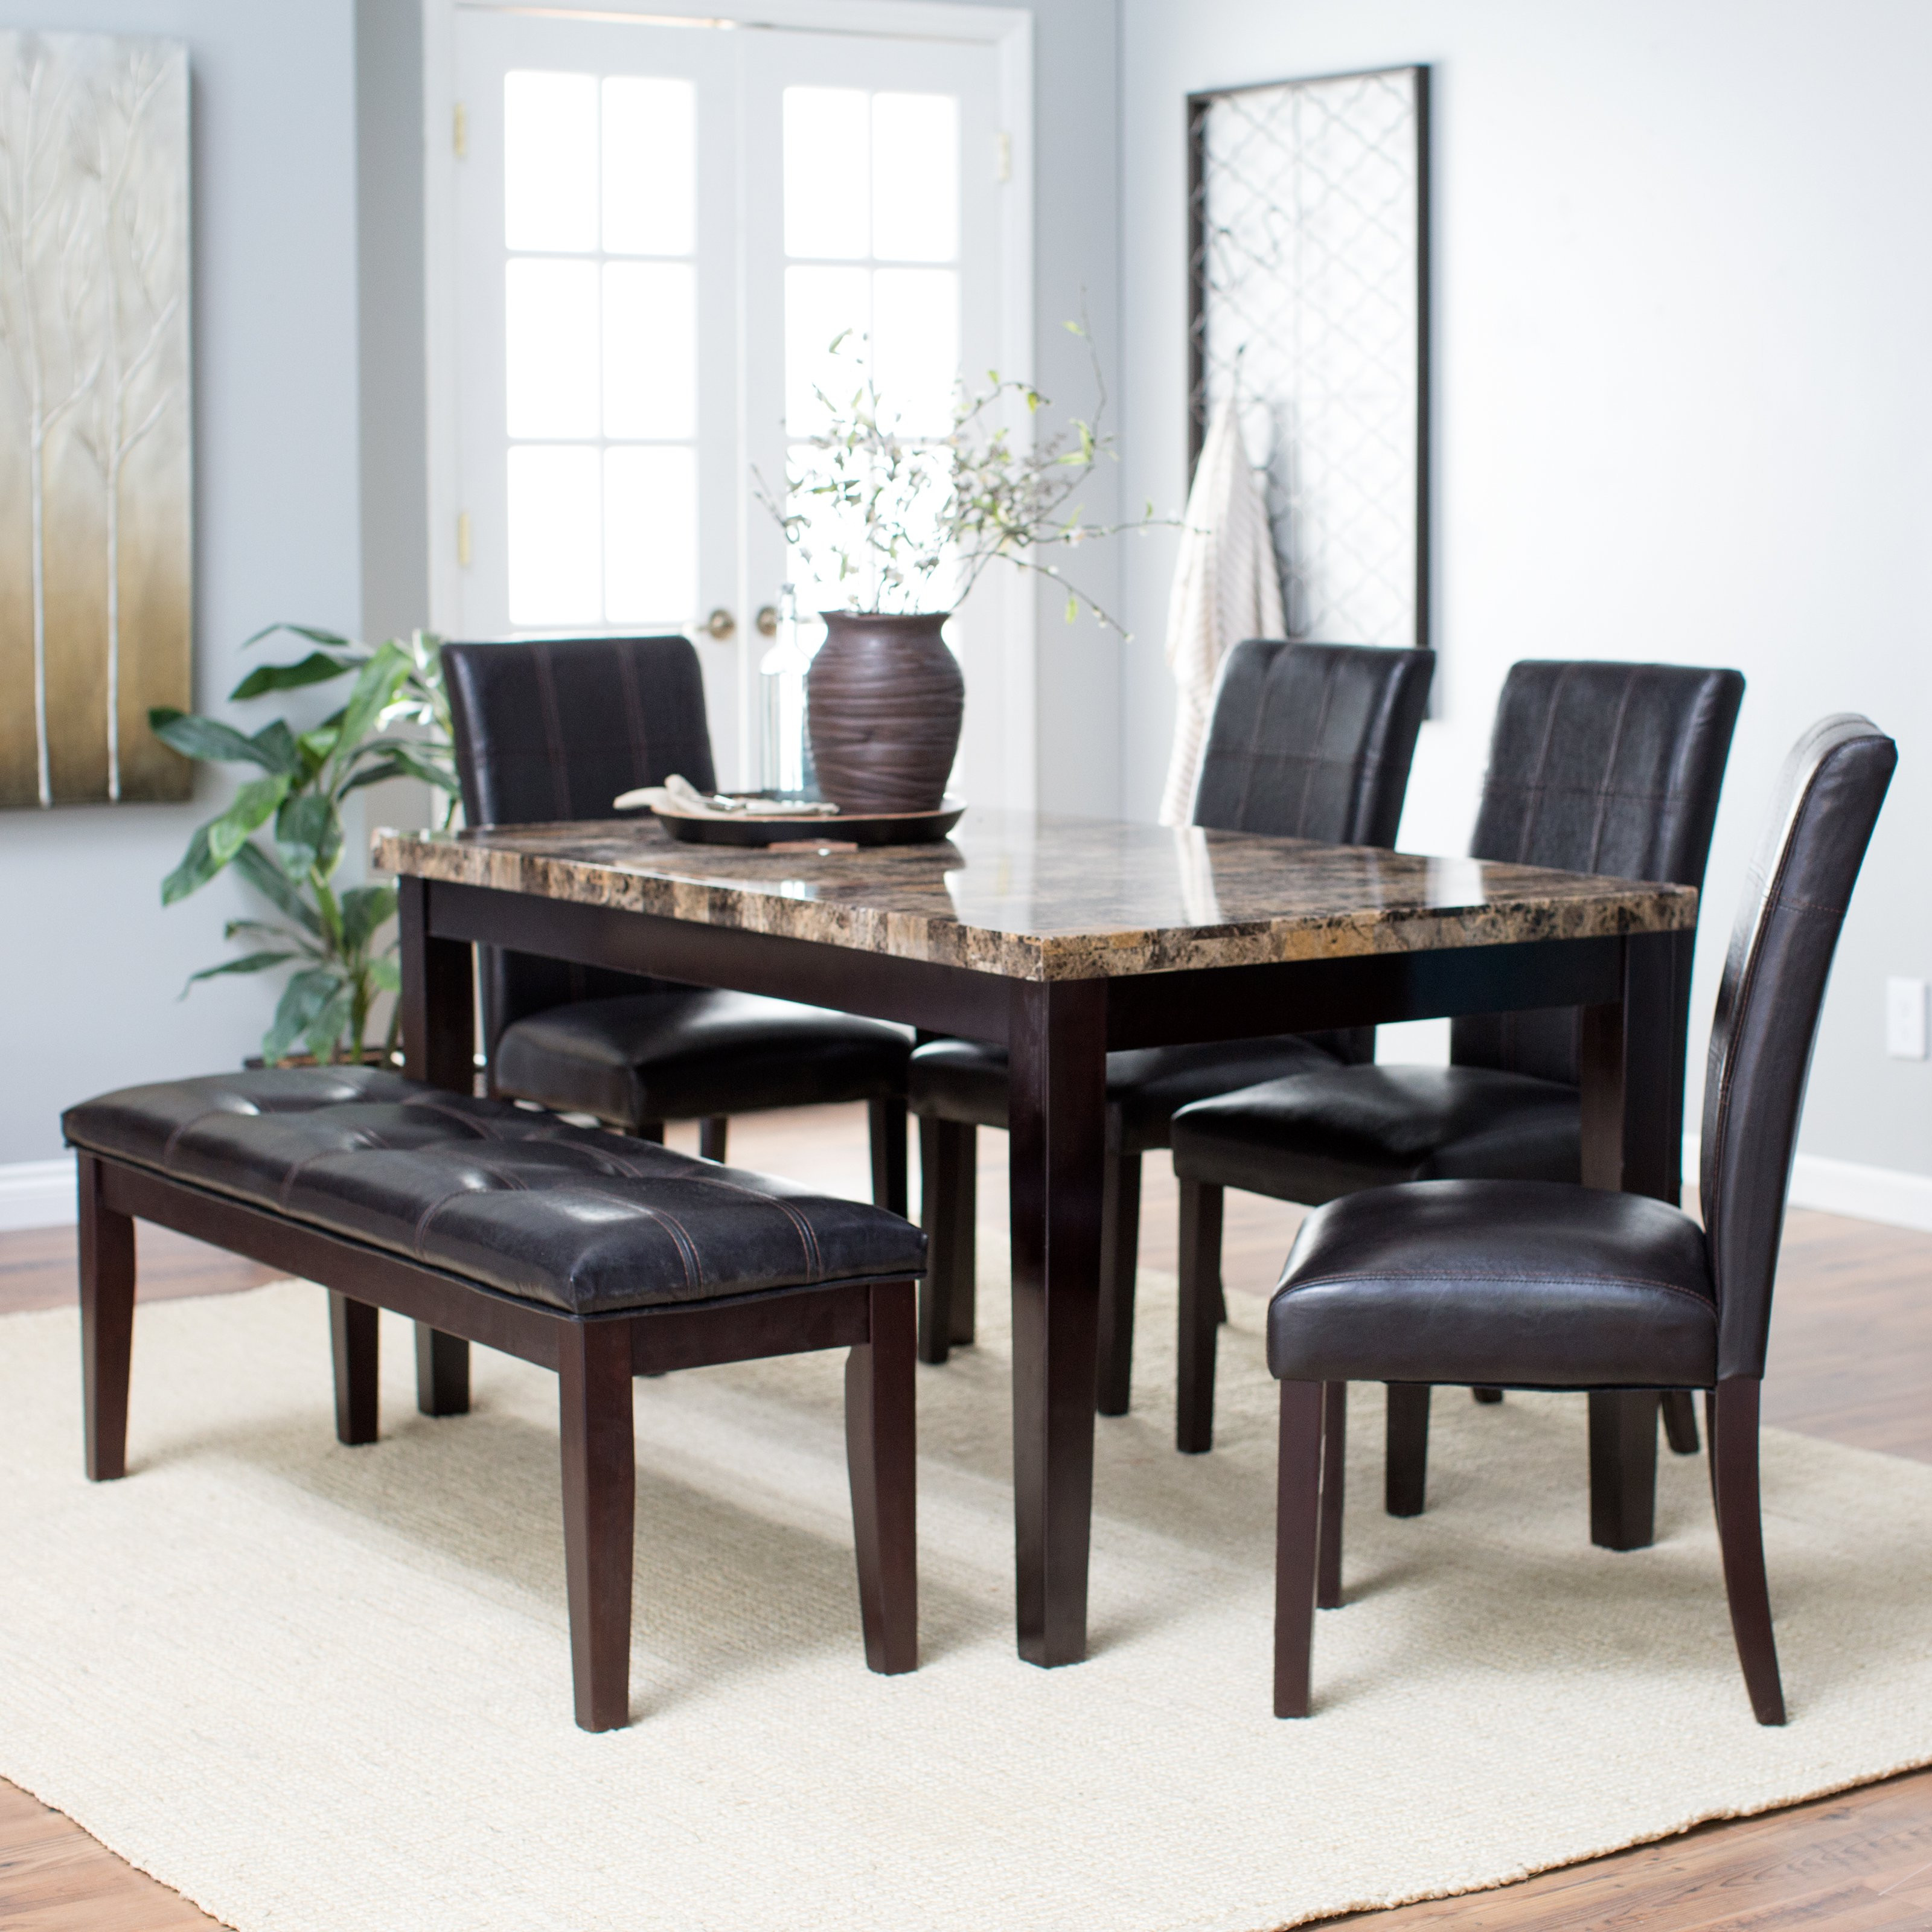 Best ideas about Dining Table Sets . Save or Pin Finley Home Palazzo 6 Piece Dining Set with Bench Now.